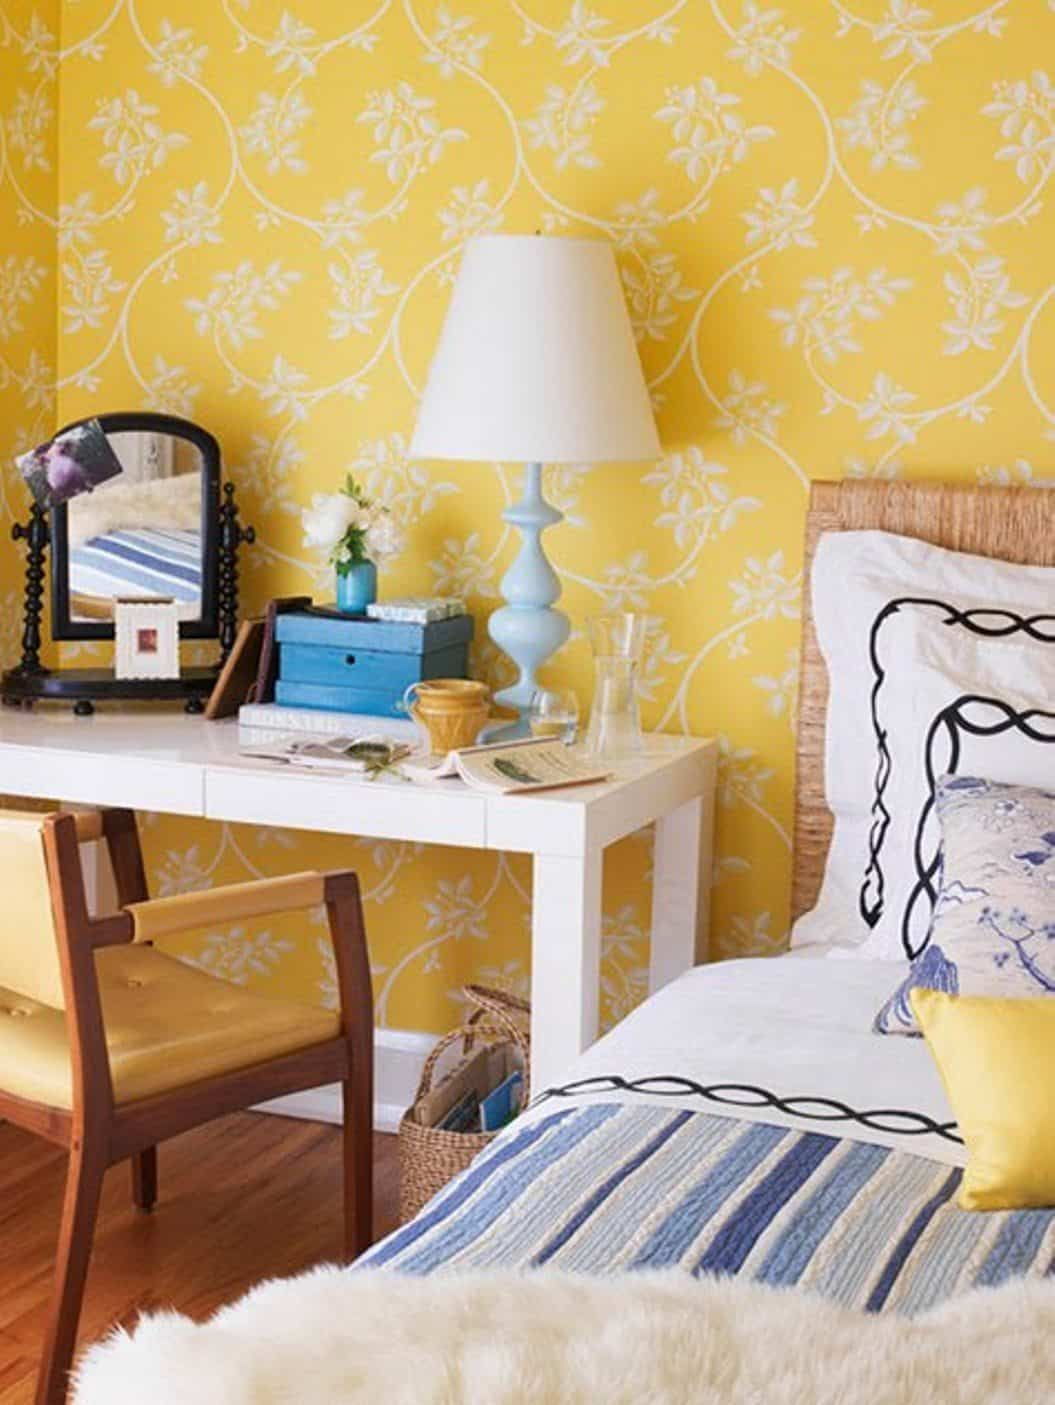 Decorating The Walls With Bedroom Wallpaper Yellow Bedroom